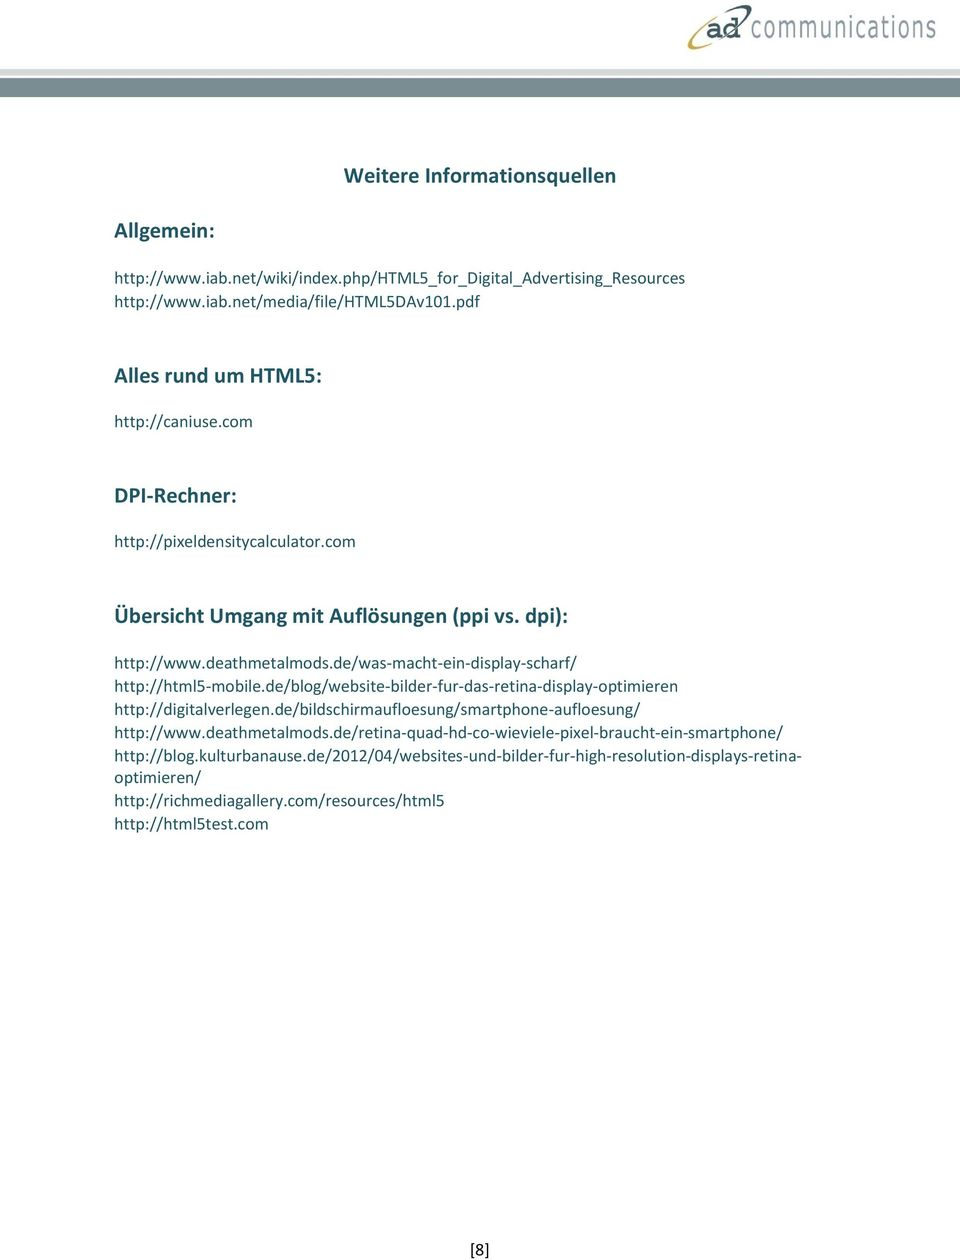 de/was-macht-ein-display-scharf/ http://html5-mobile.de/blog/website-bilder-fur-das-retina-display-optimieren http://digitalverlegen.